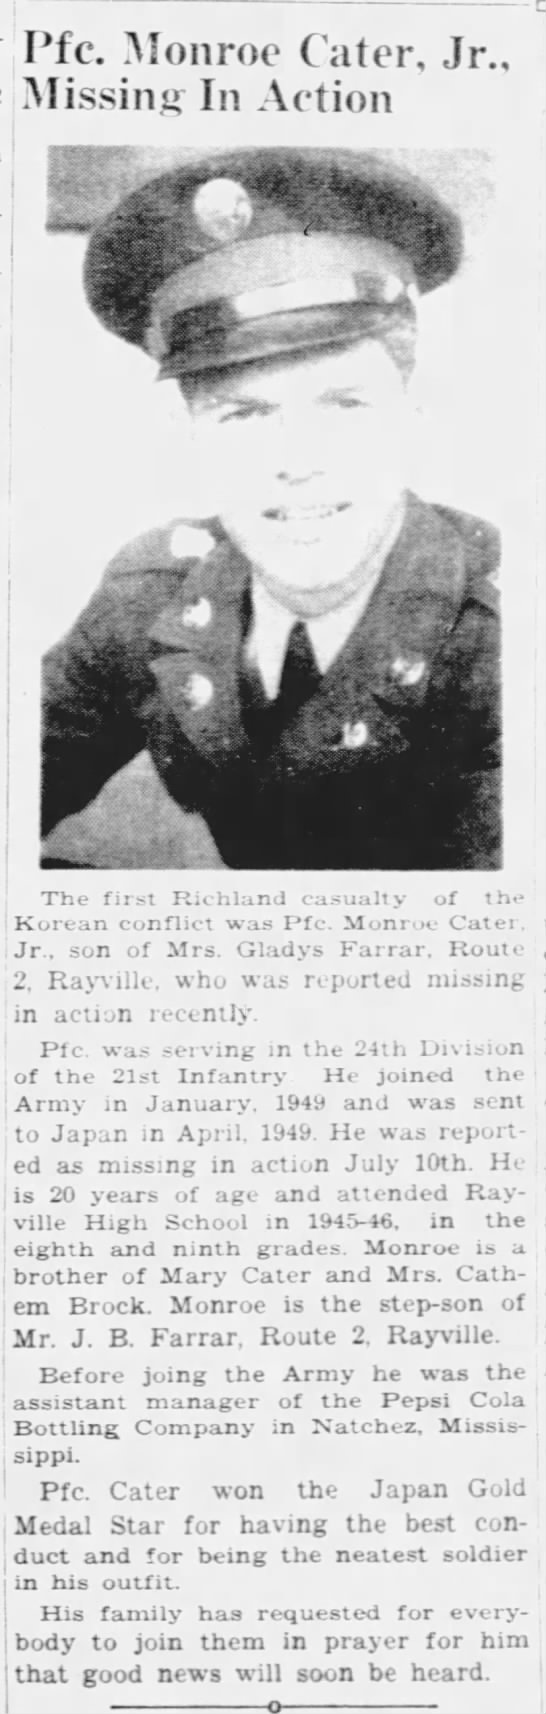 Pfc. Monroe Cater, Jr. -